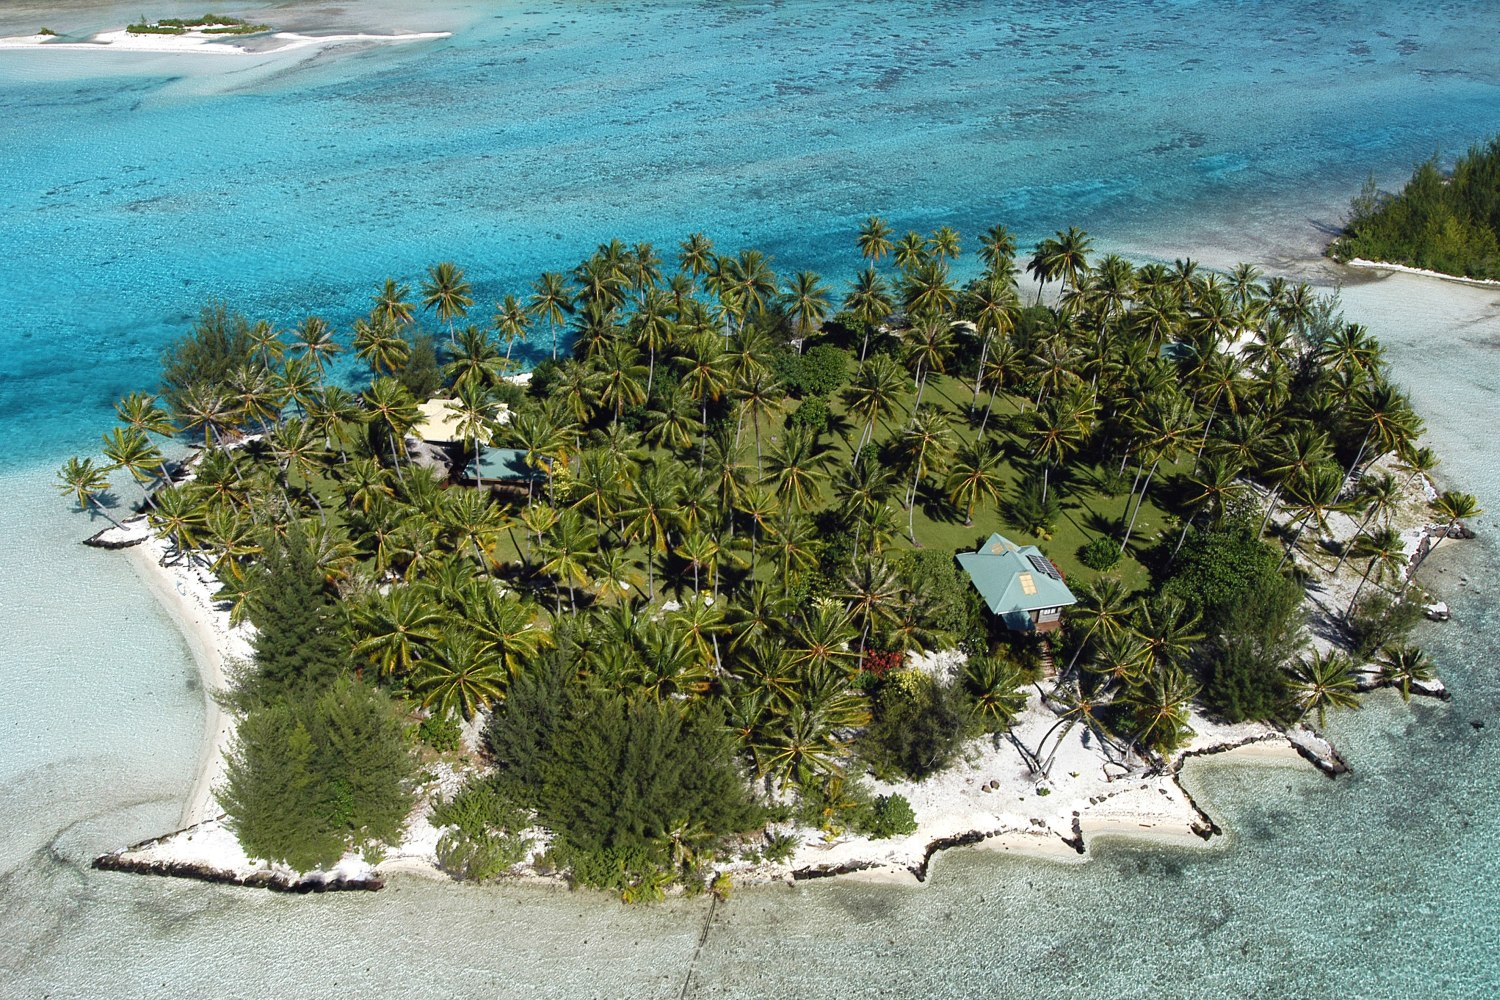 Private islands for sale haapiti rahi french polynesia for French polynesia islands for sale